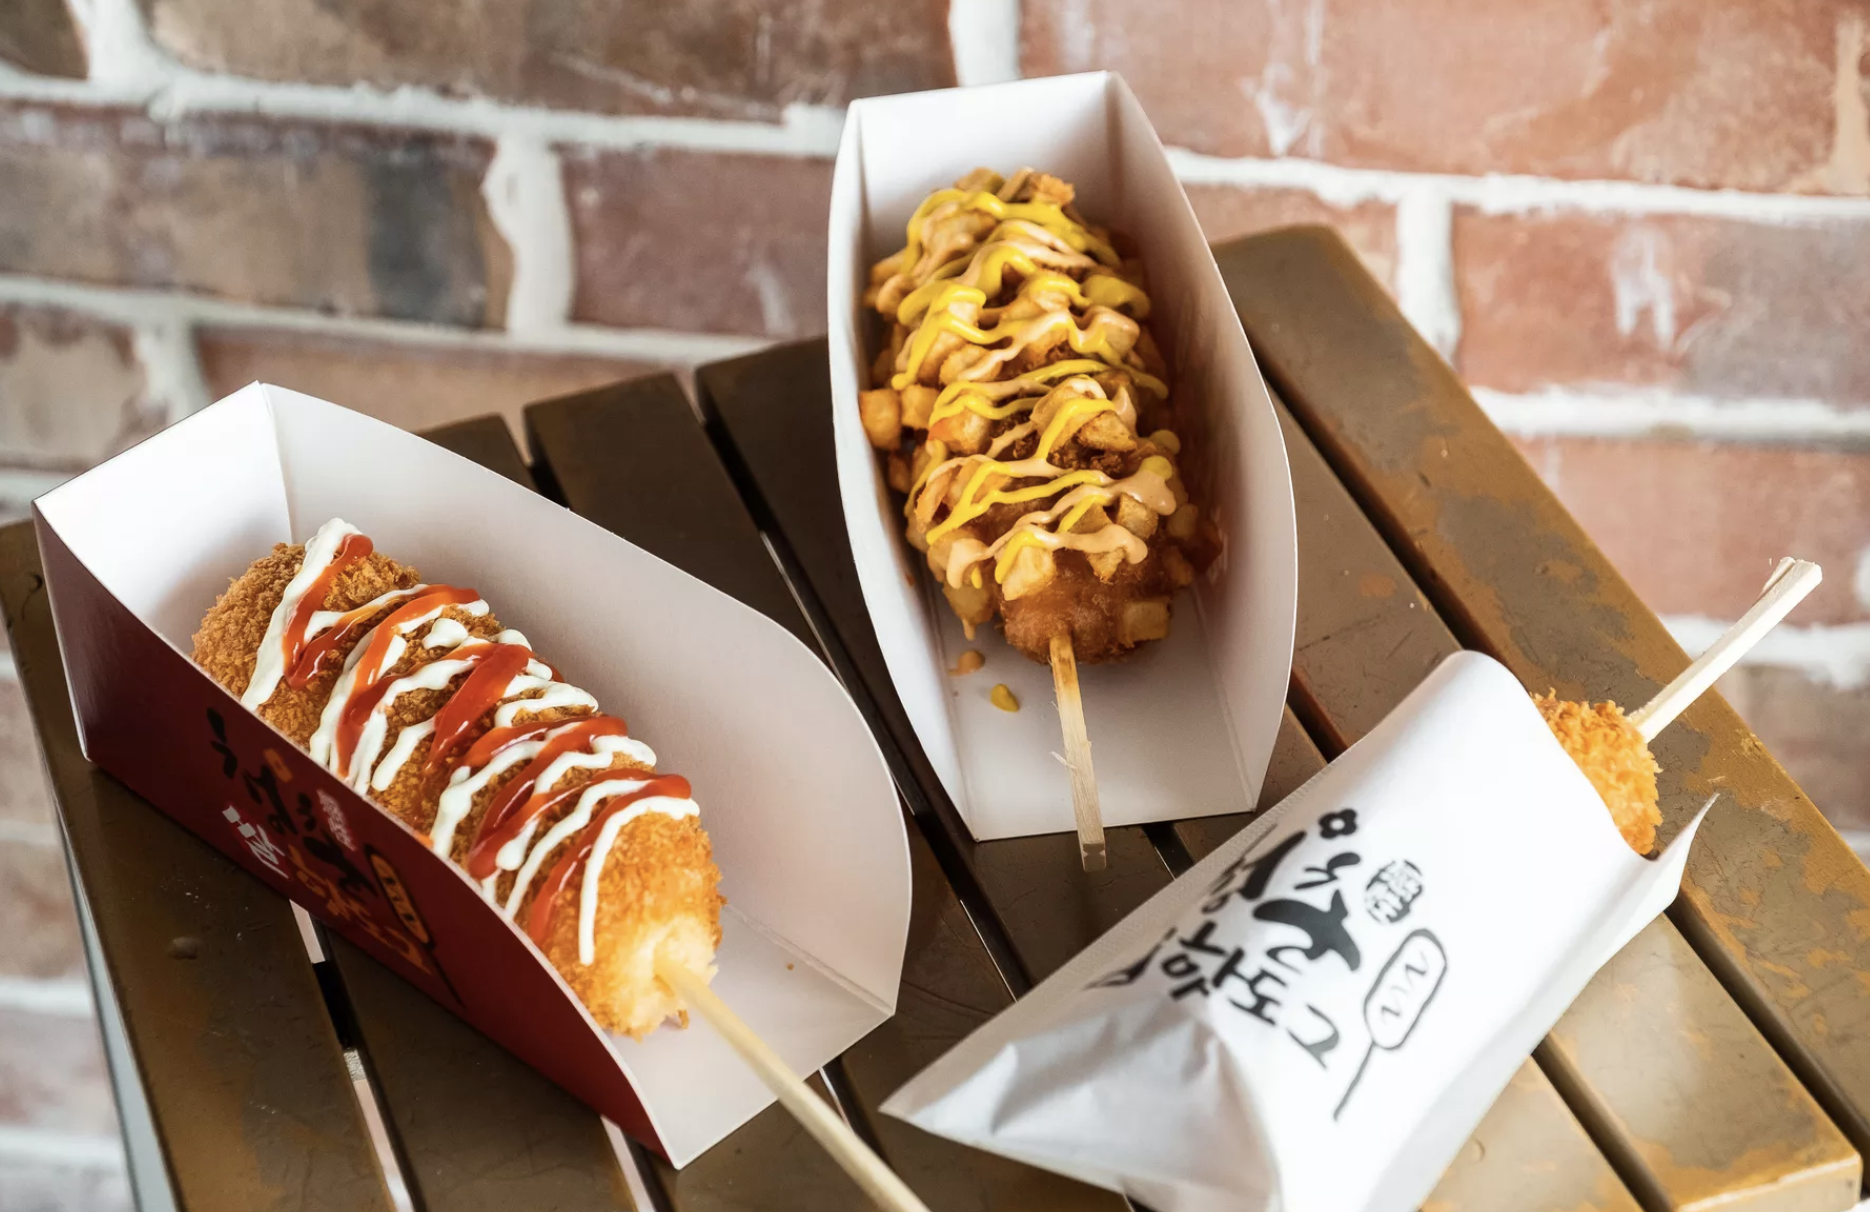 A variety of Chung Chun's corndog-like snacks, dressed with a variety of colorful sauces, served in paper trays and wrappers.